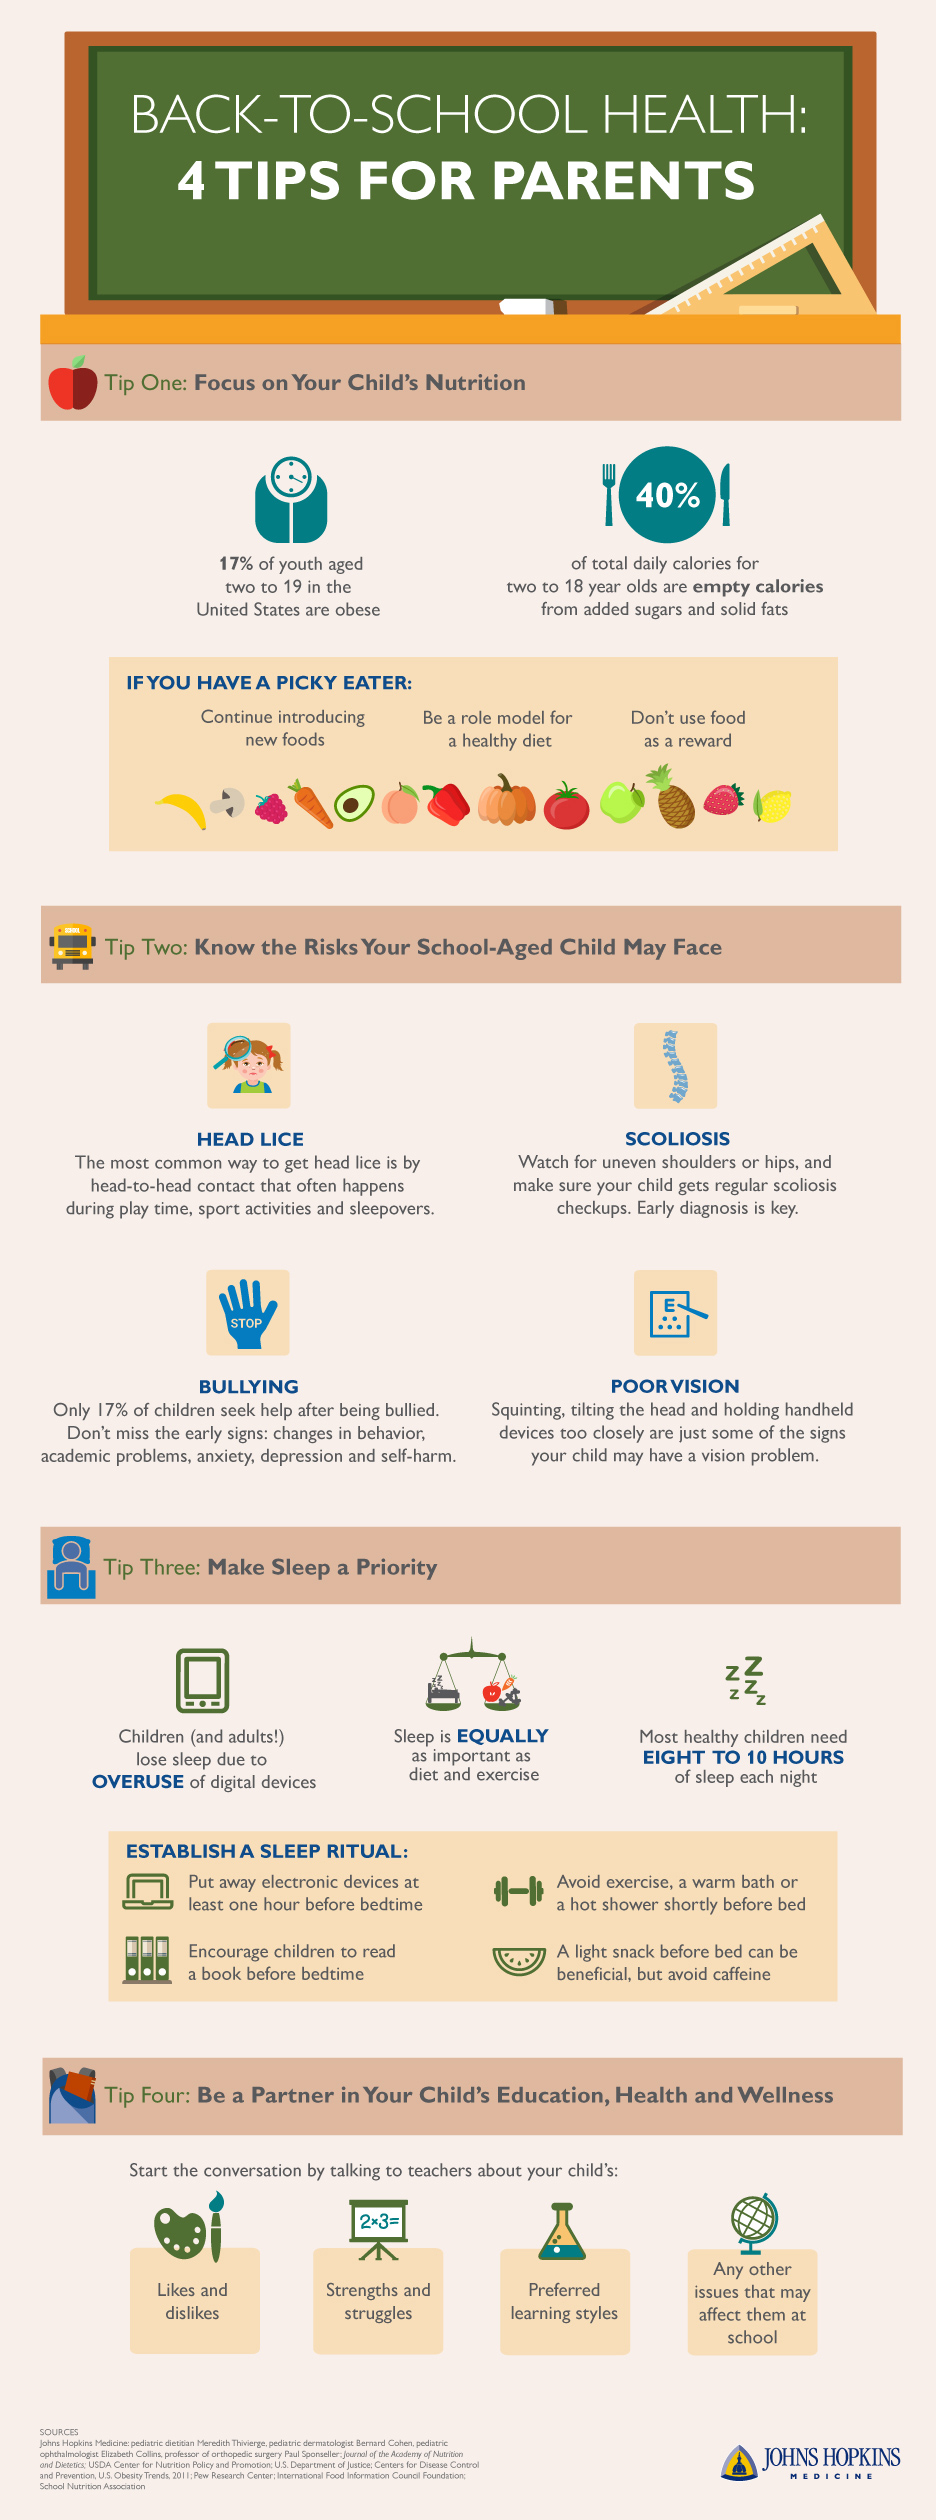 back-to-school-health-infographic.jpg